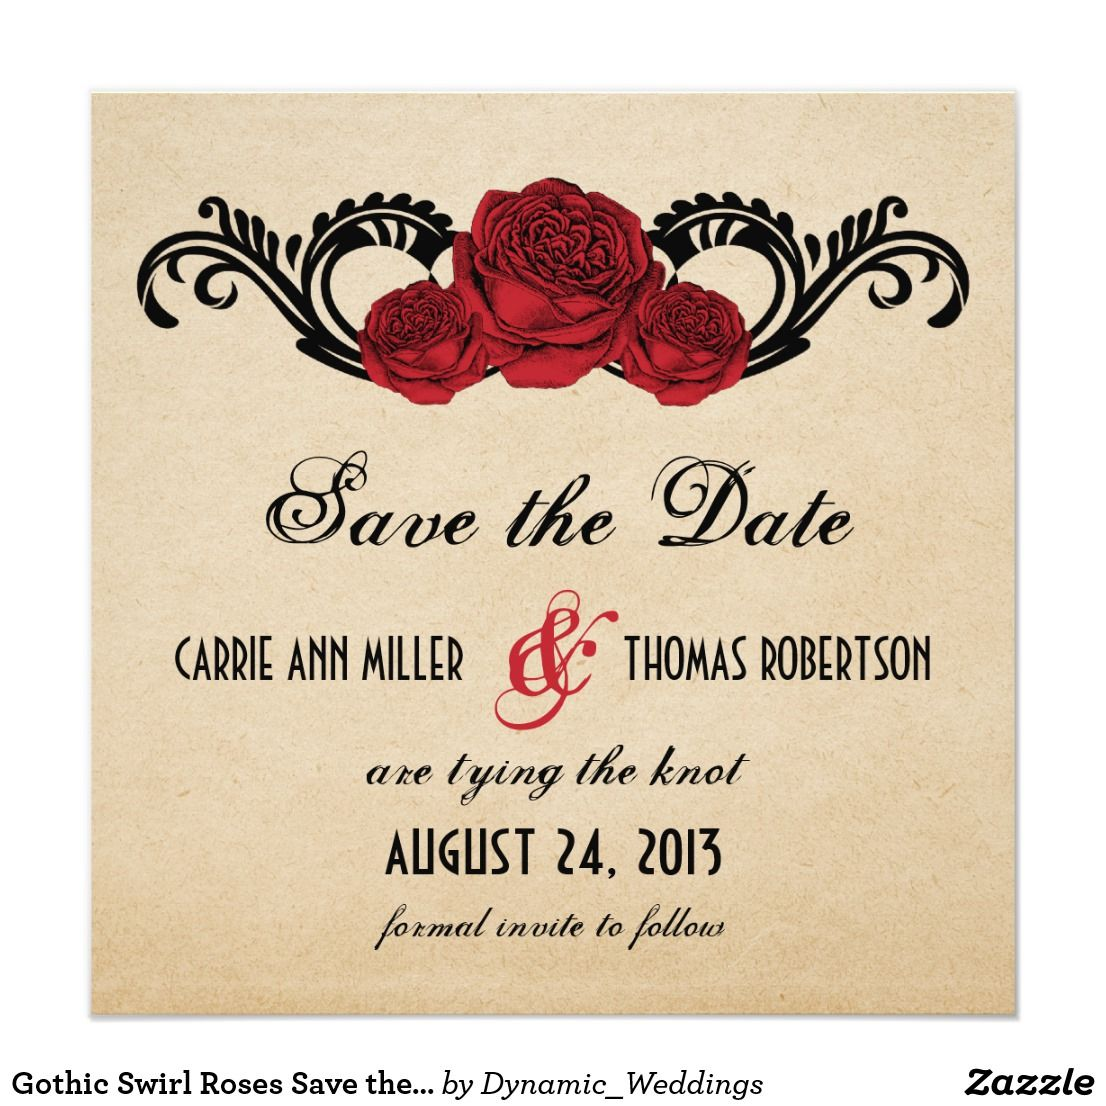 Gothic Swirl Roses Save the Date Invite, Red | wedding invitations ...